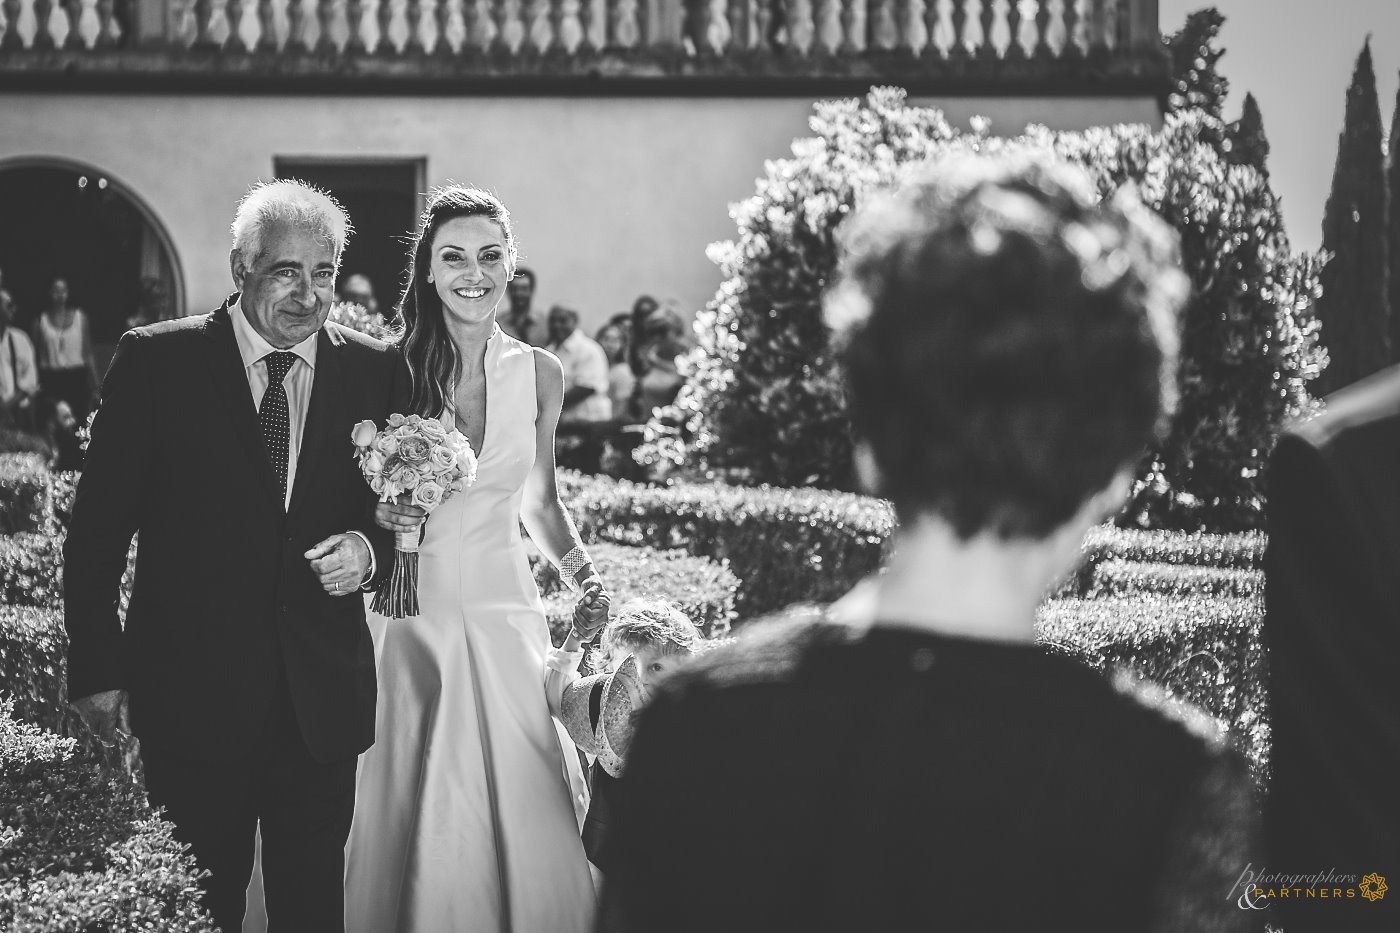 photography_weddings_bucciano_06.jpg